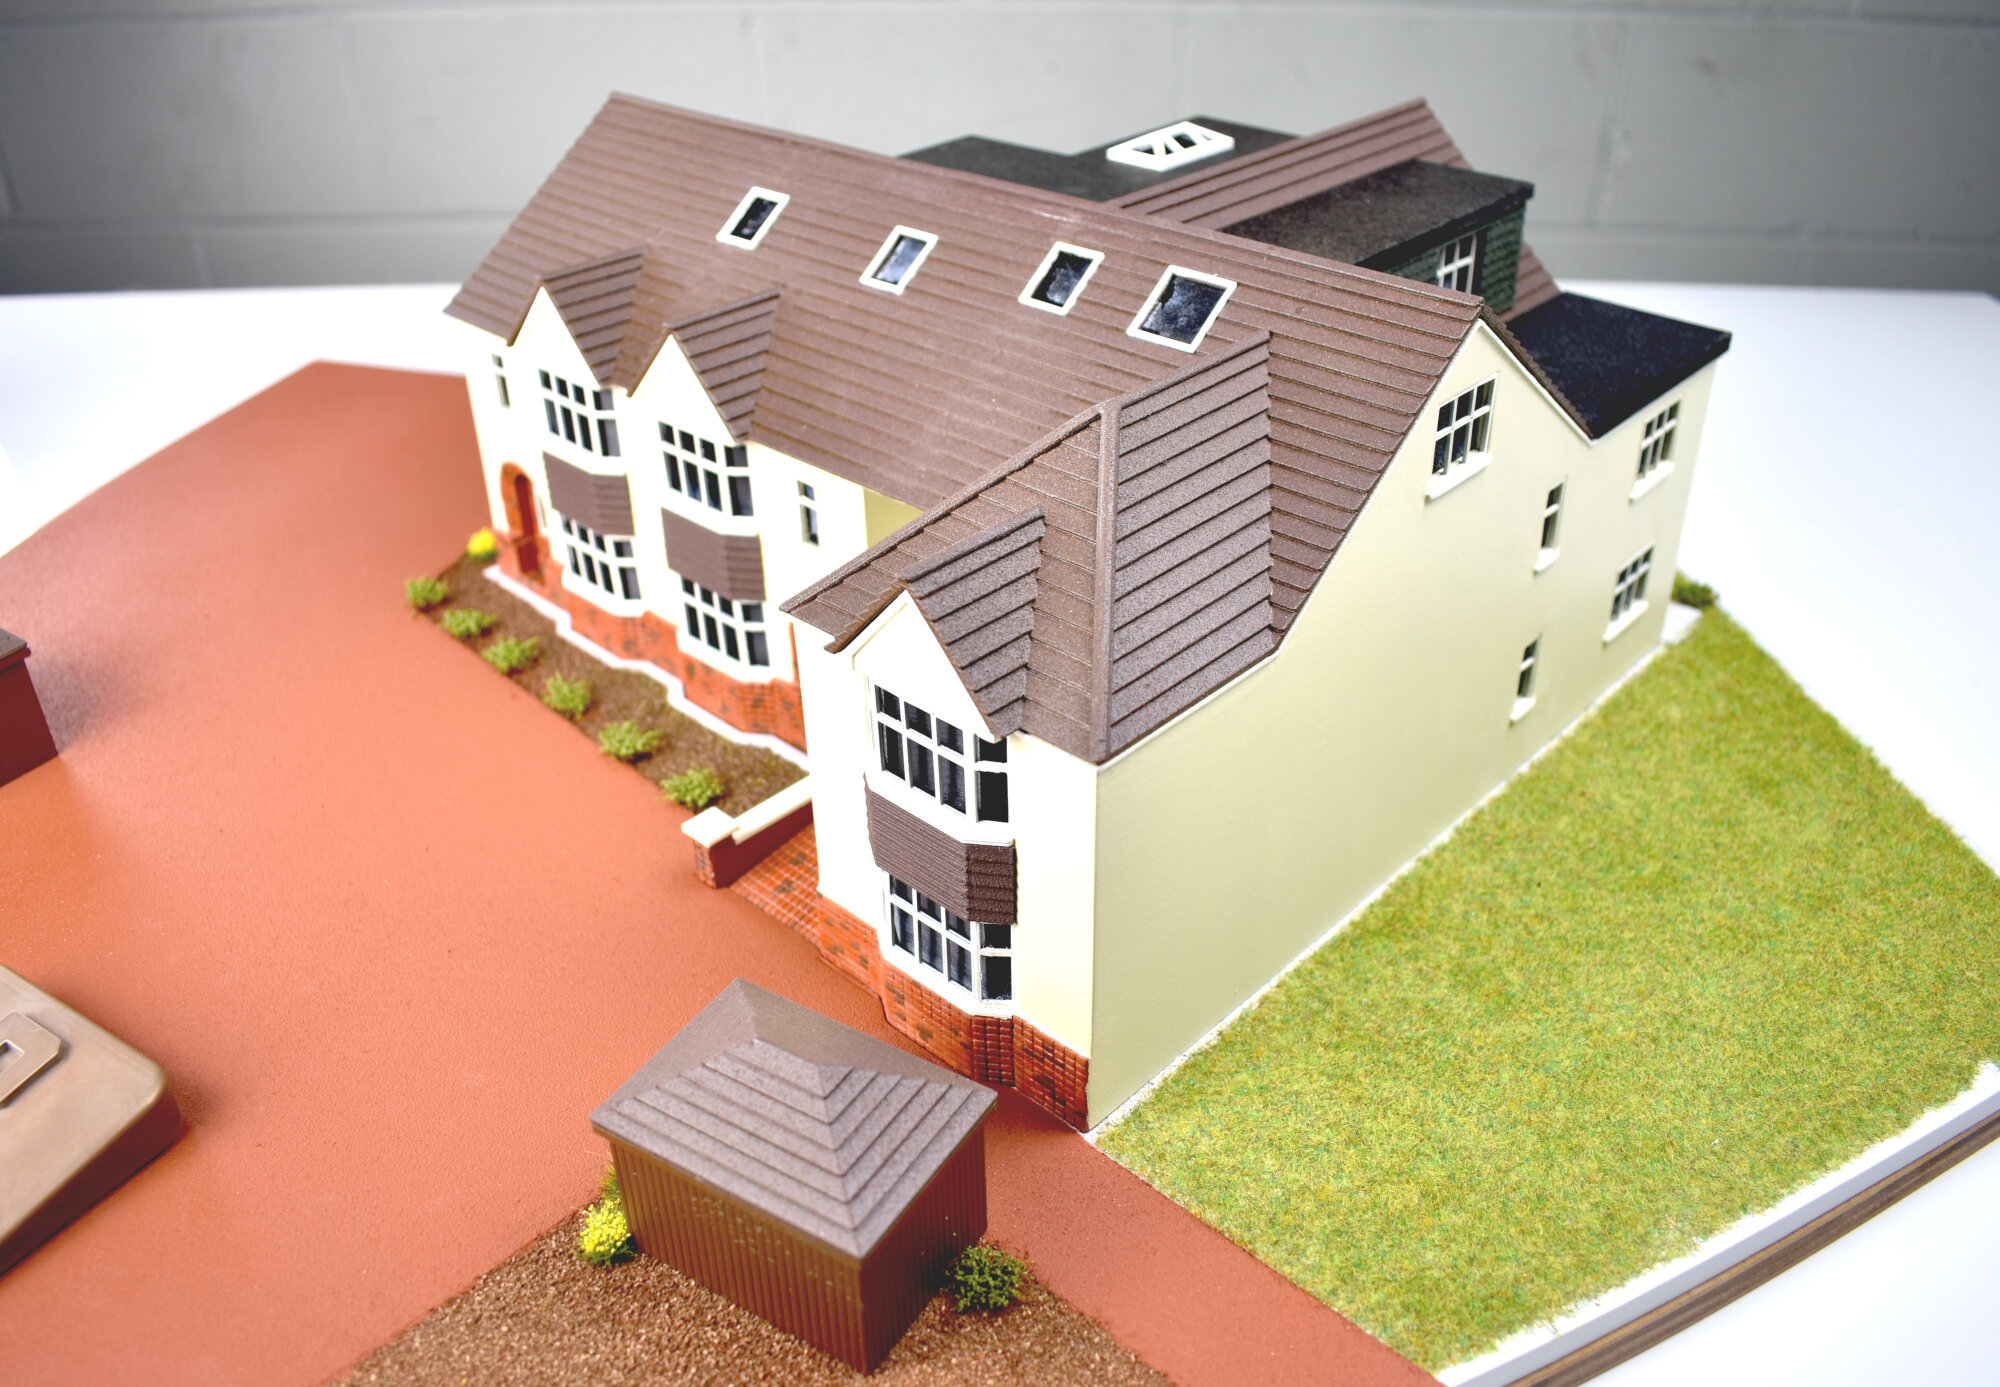 Exposition Models -